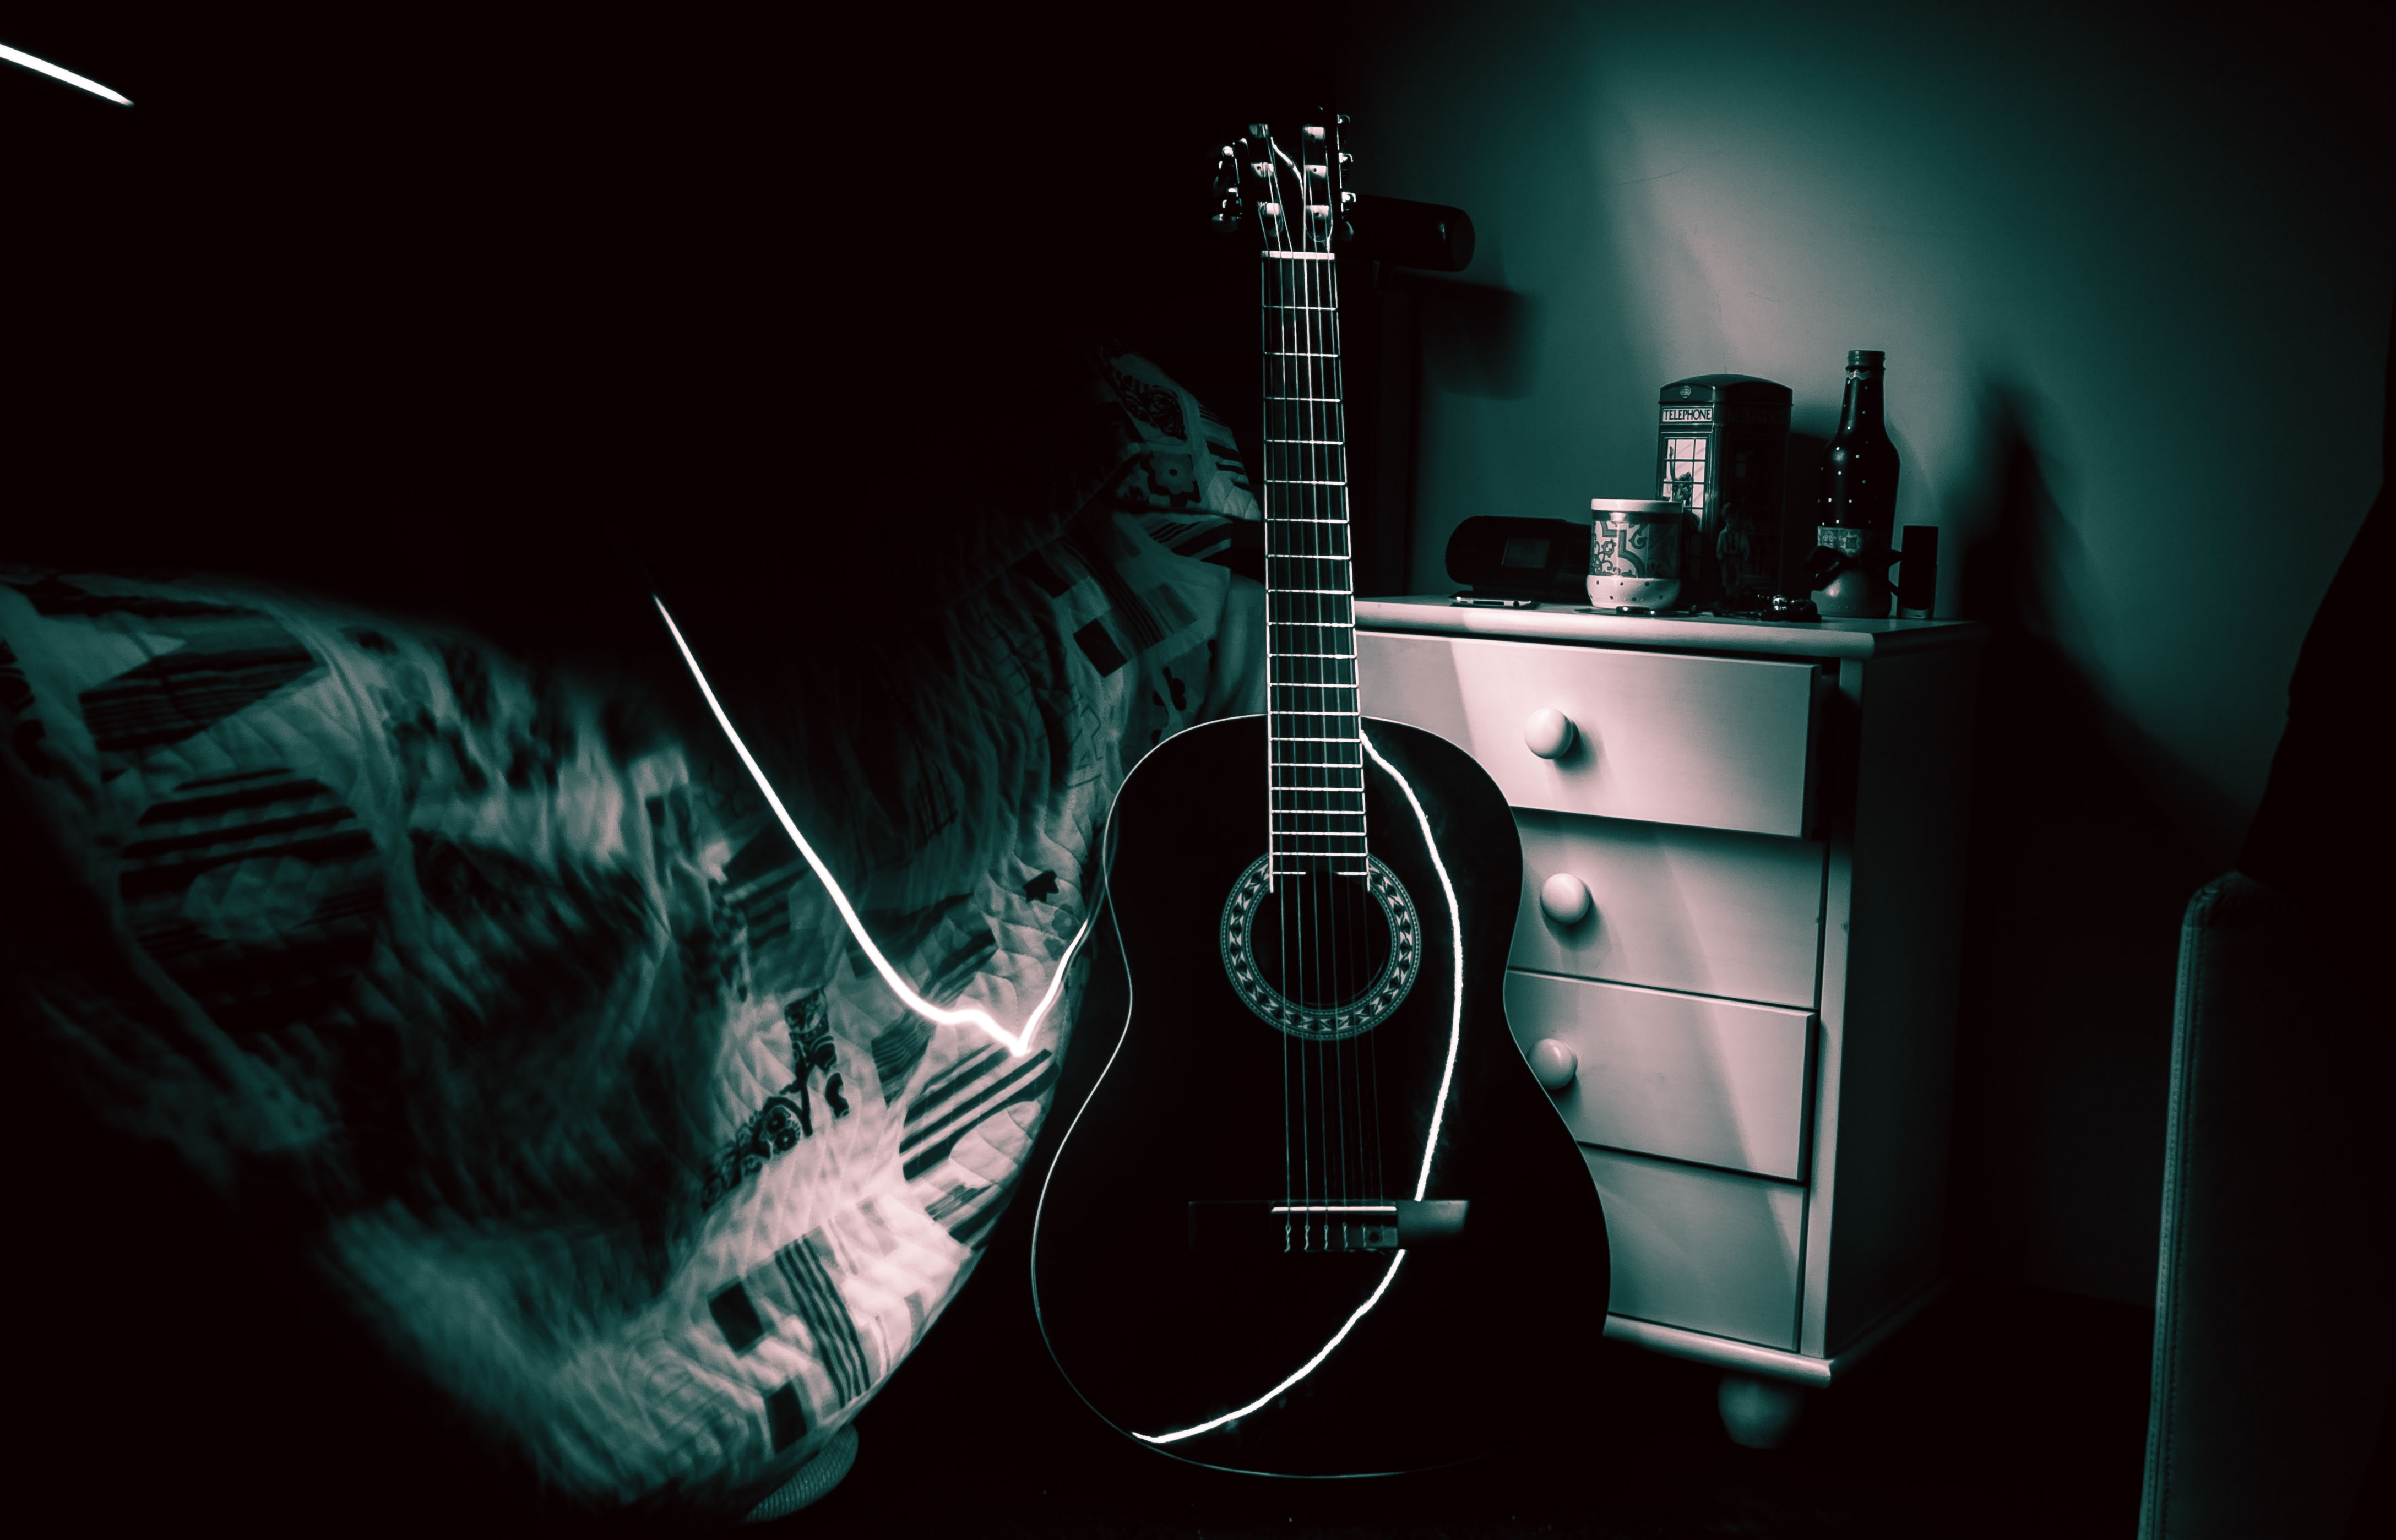 View of Guitar, Acoustic, Art, Band, Bed, HQ Photo